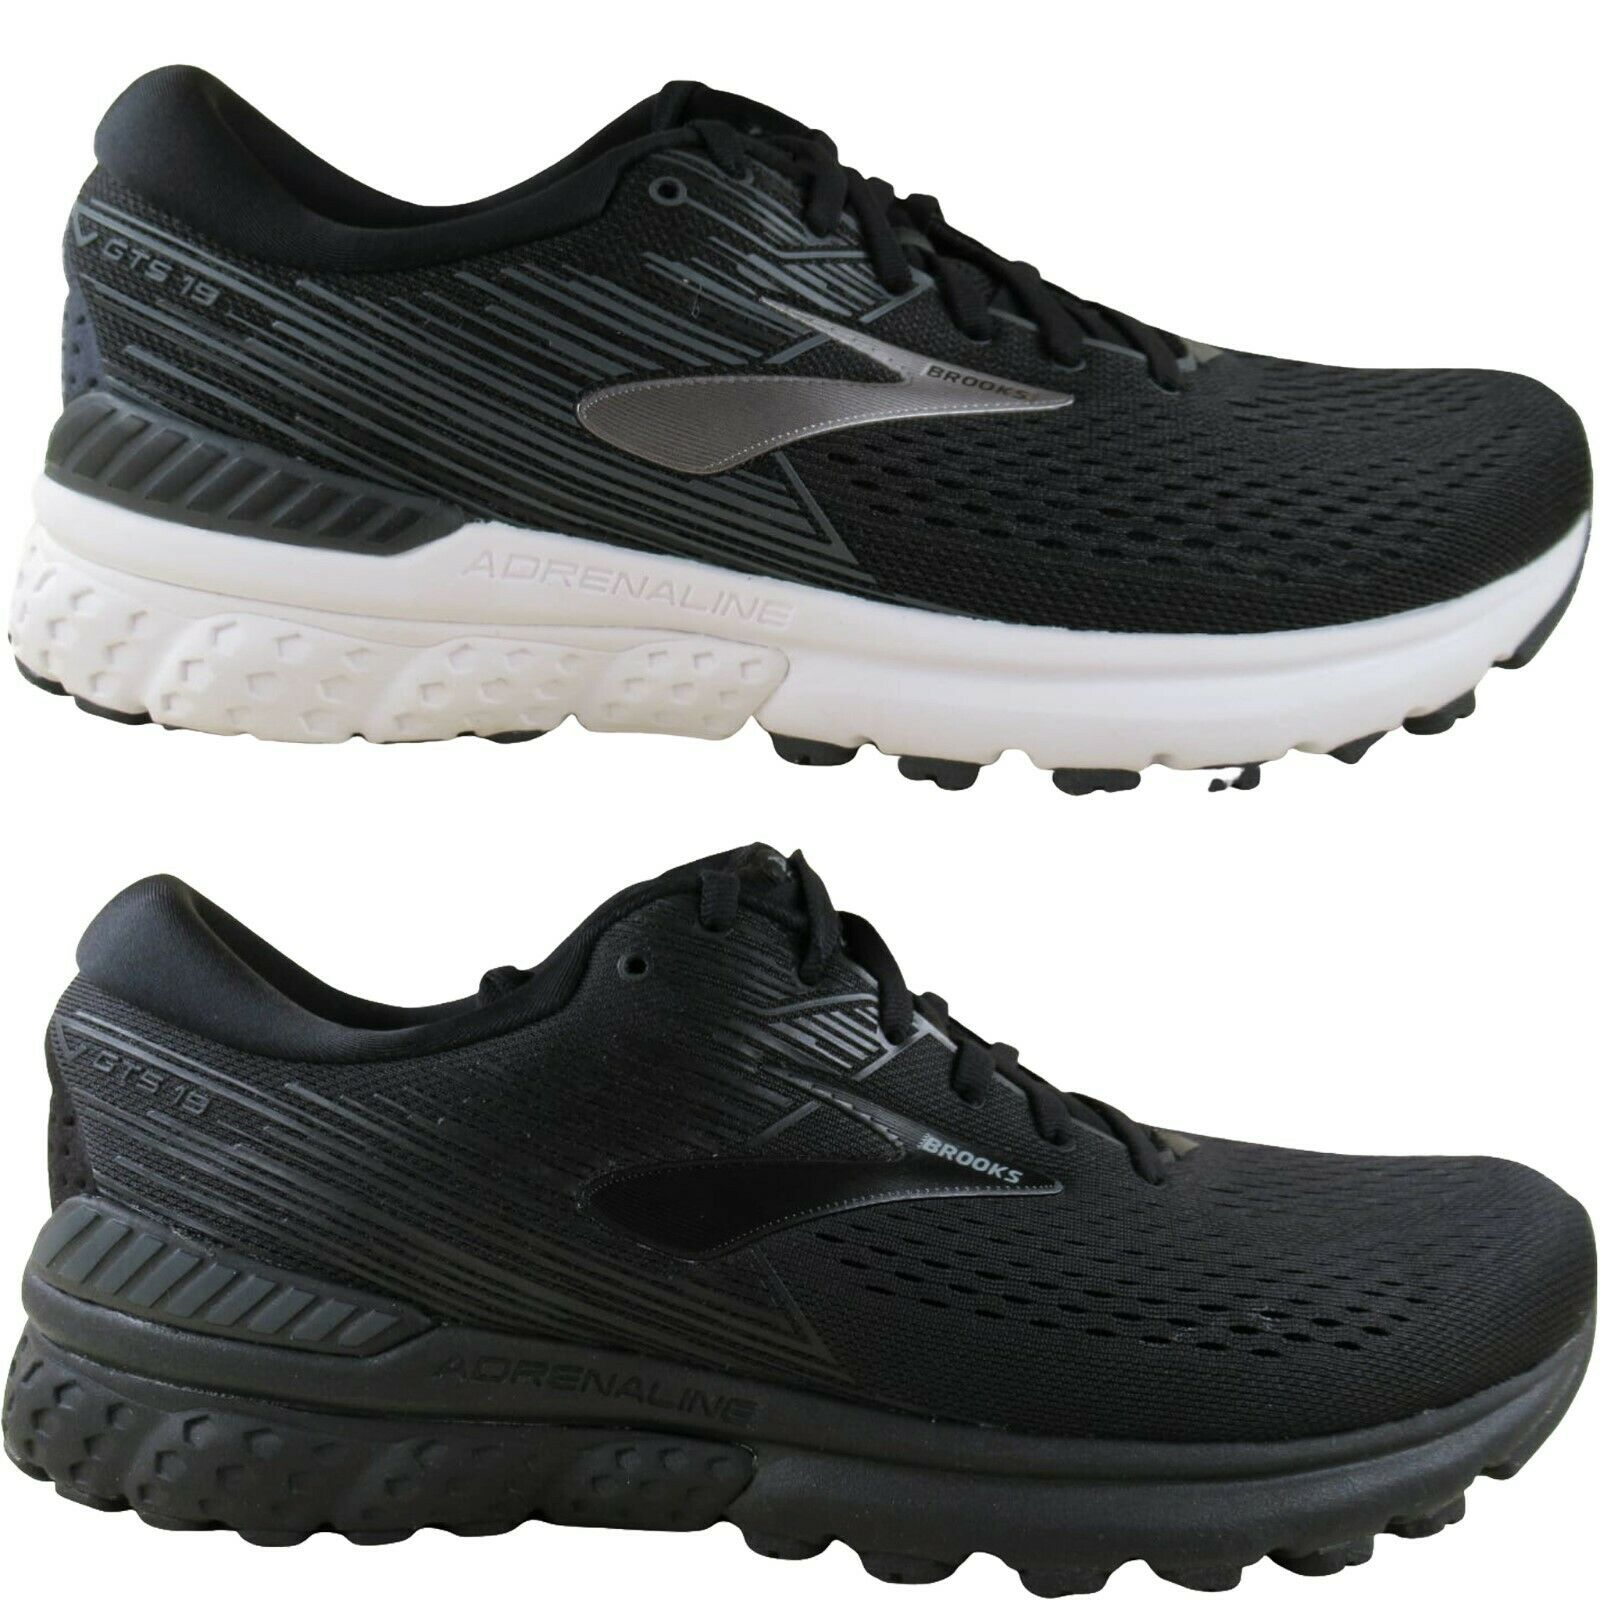 ASR 11 Trail Running Shoes